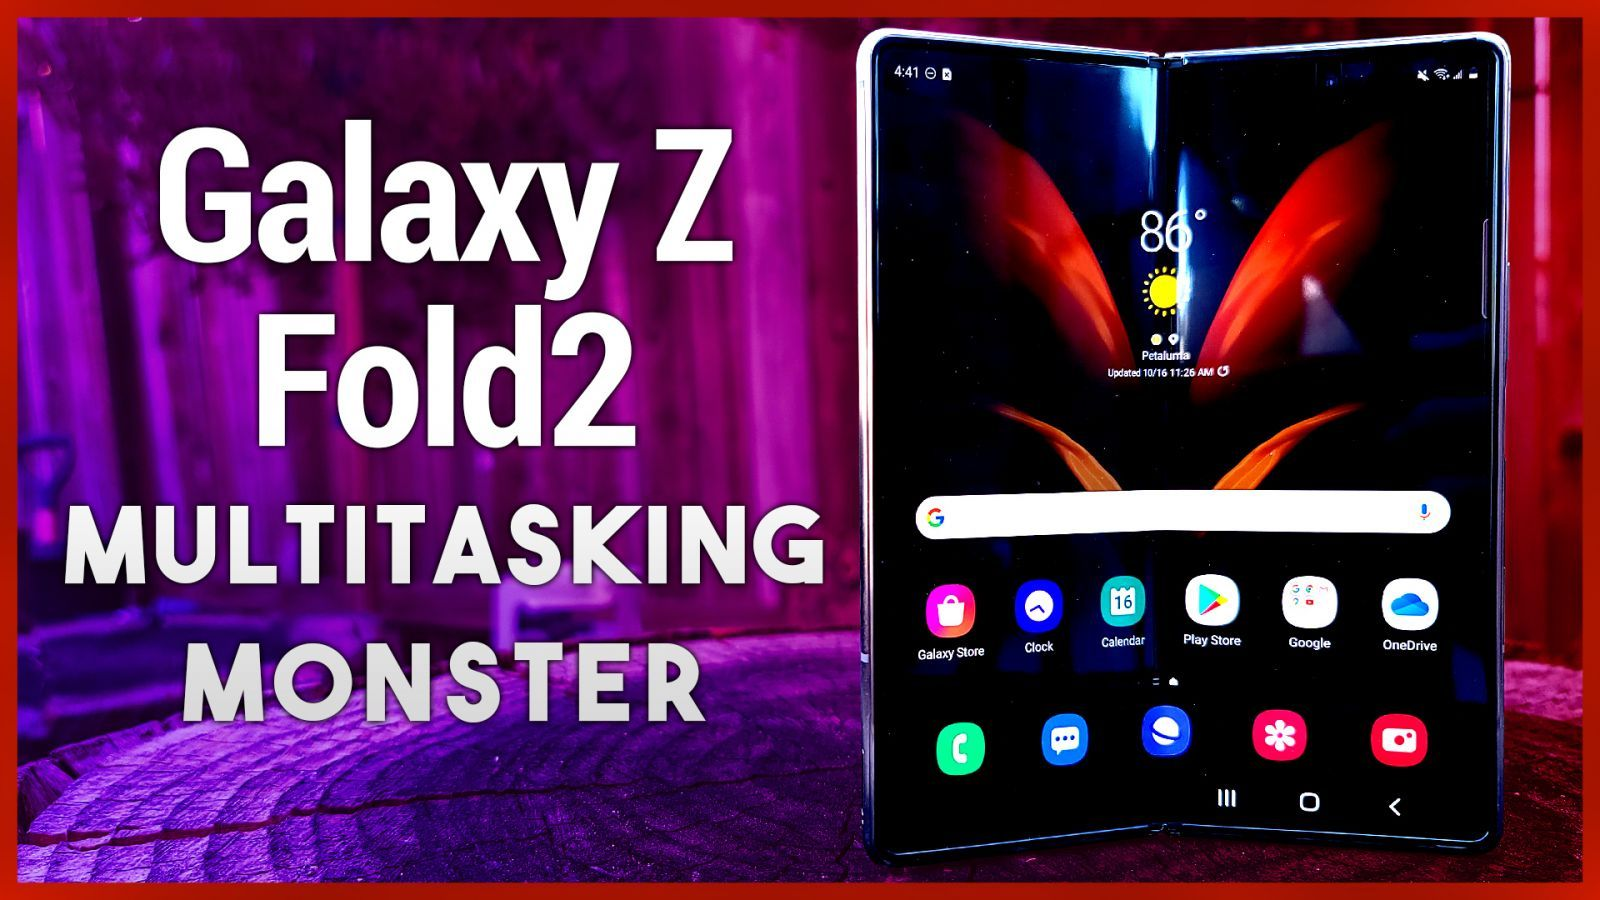 Galaxy Z Fold2 Review - Samsung's $2,000 Folding Phone More Than a Gimmick?